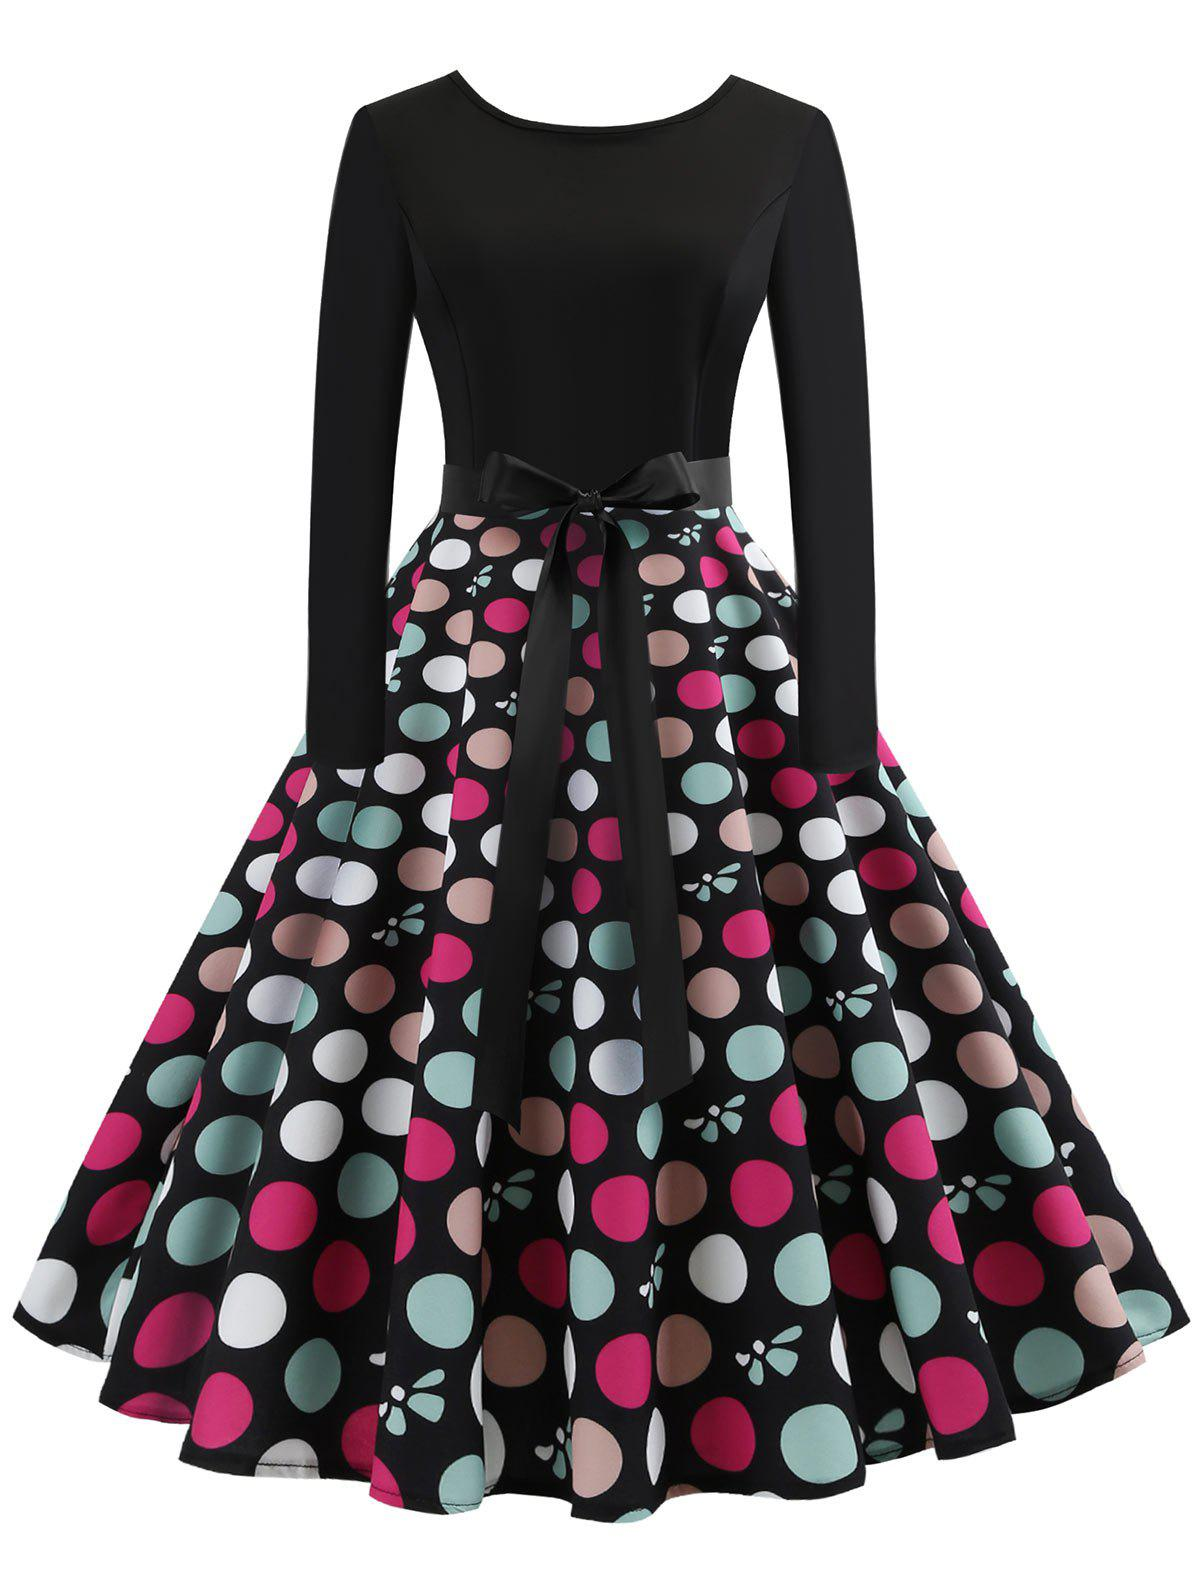 Store Vintage Belted Polka Dot Swing Dress